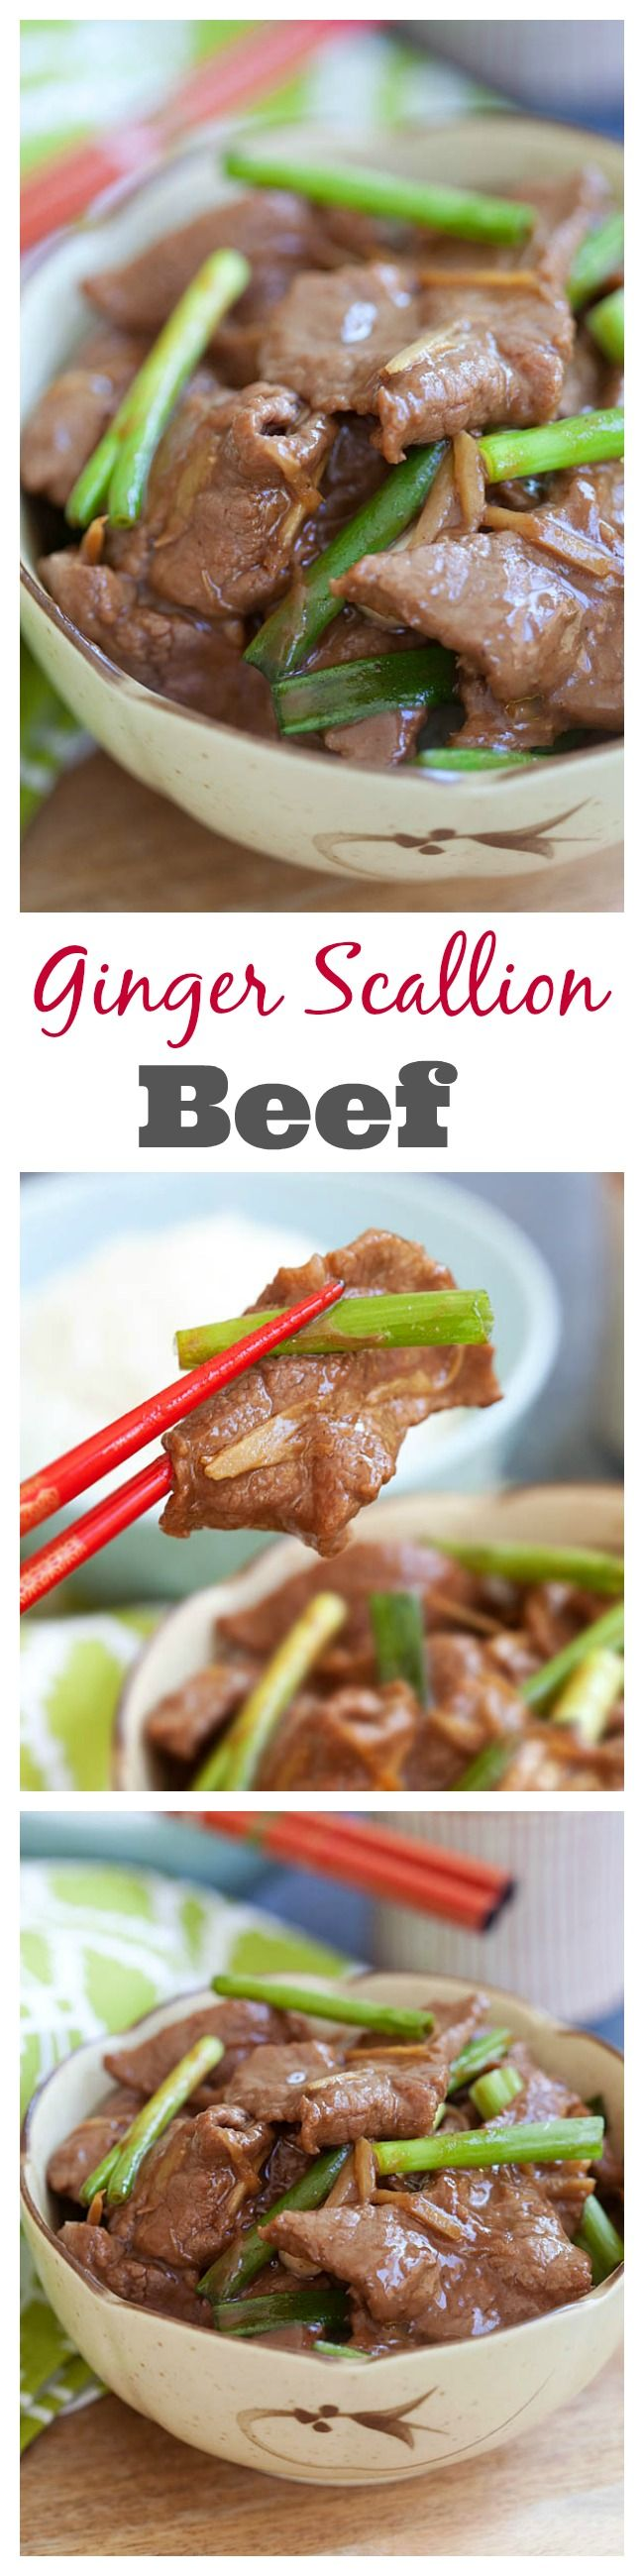 437 best chinese recipes images on pinterest chinese recipes ginger and scallion beef tender juicy and super delicious ginger and scallion beef recipe make ginger and scallion beef at home with simple ingredients forumfinder Gallery